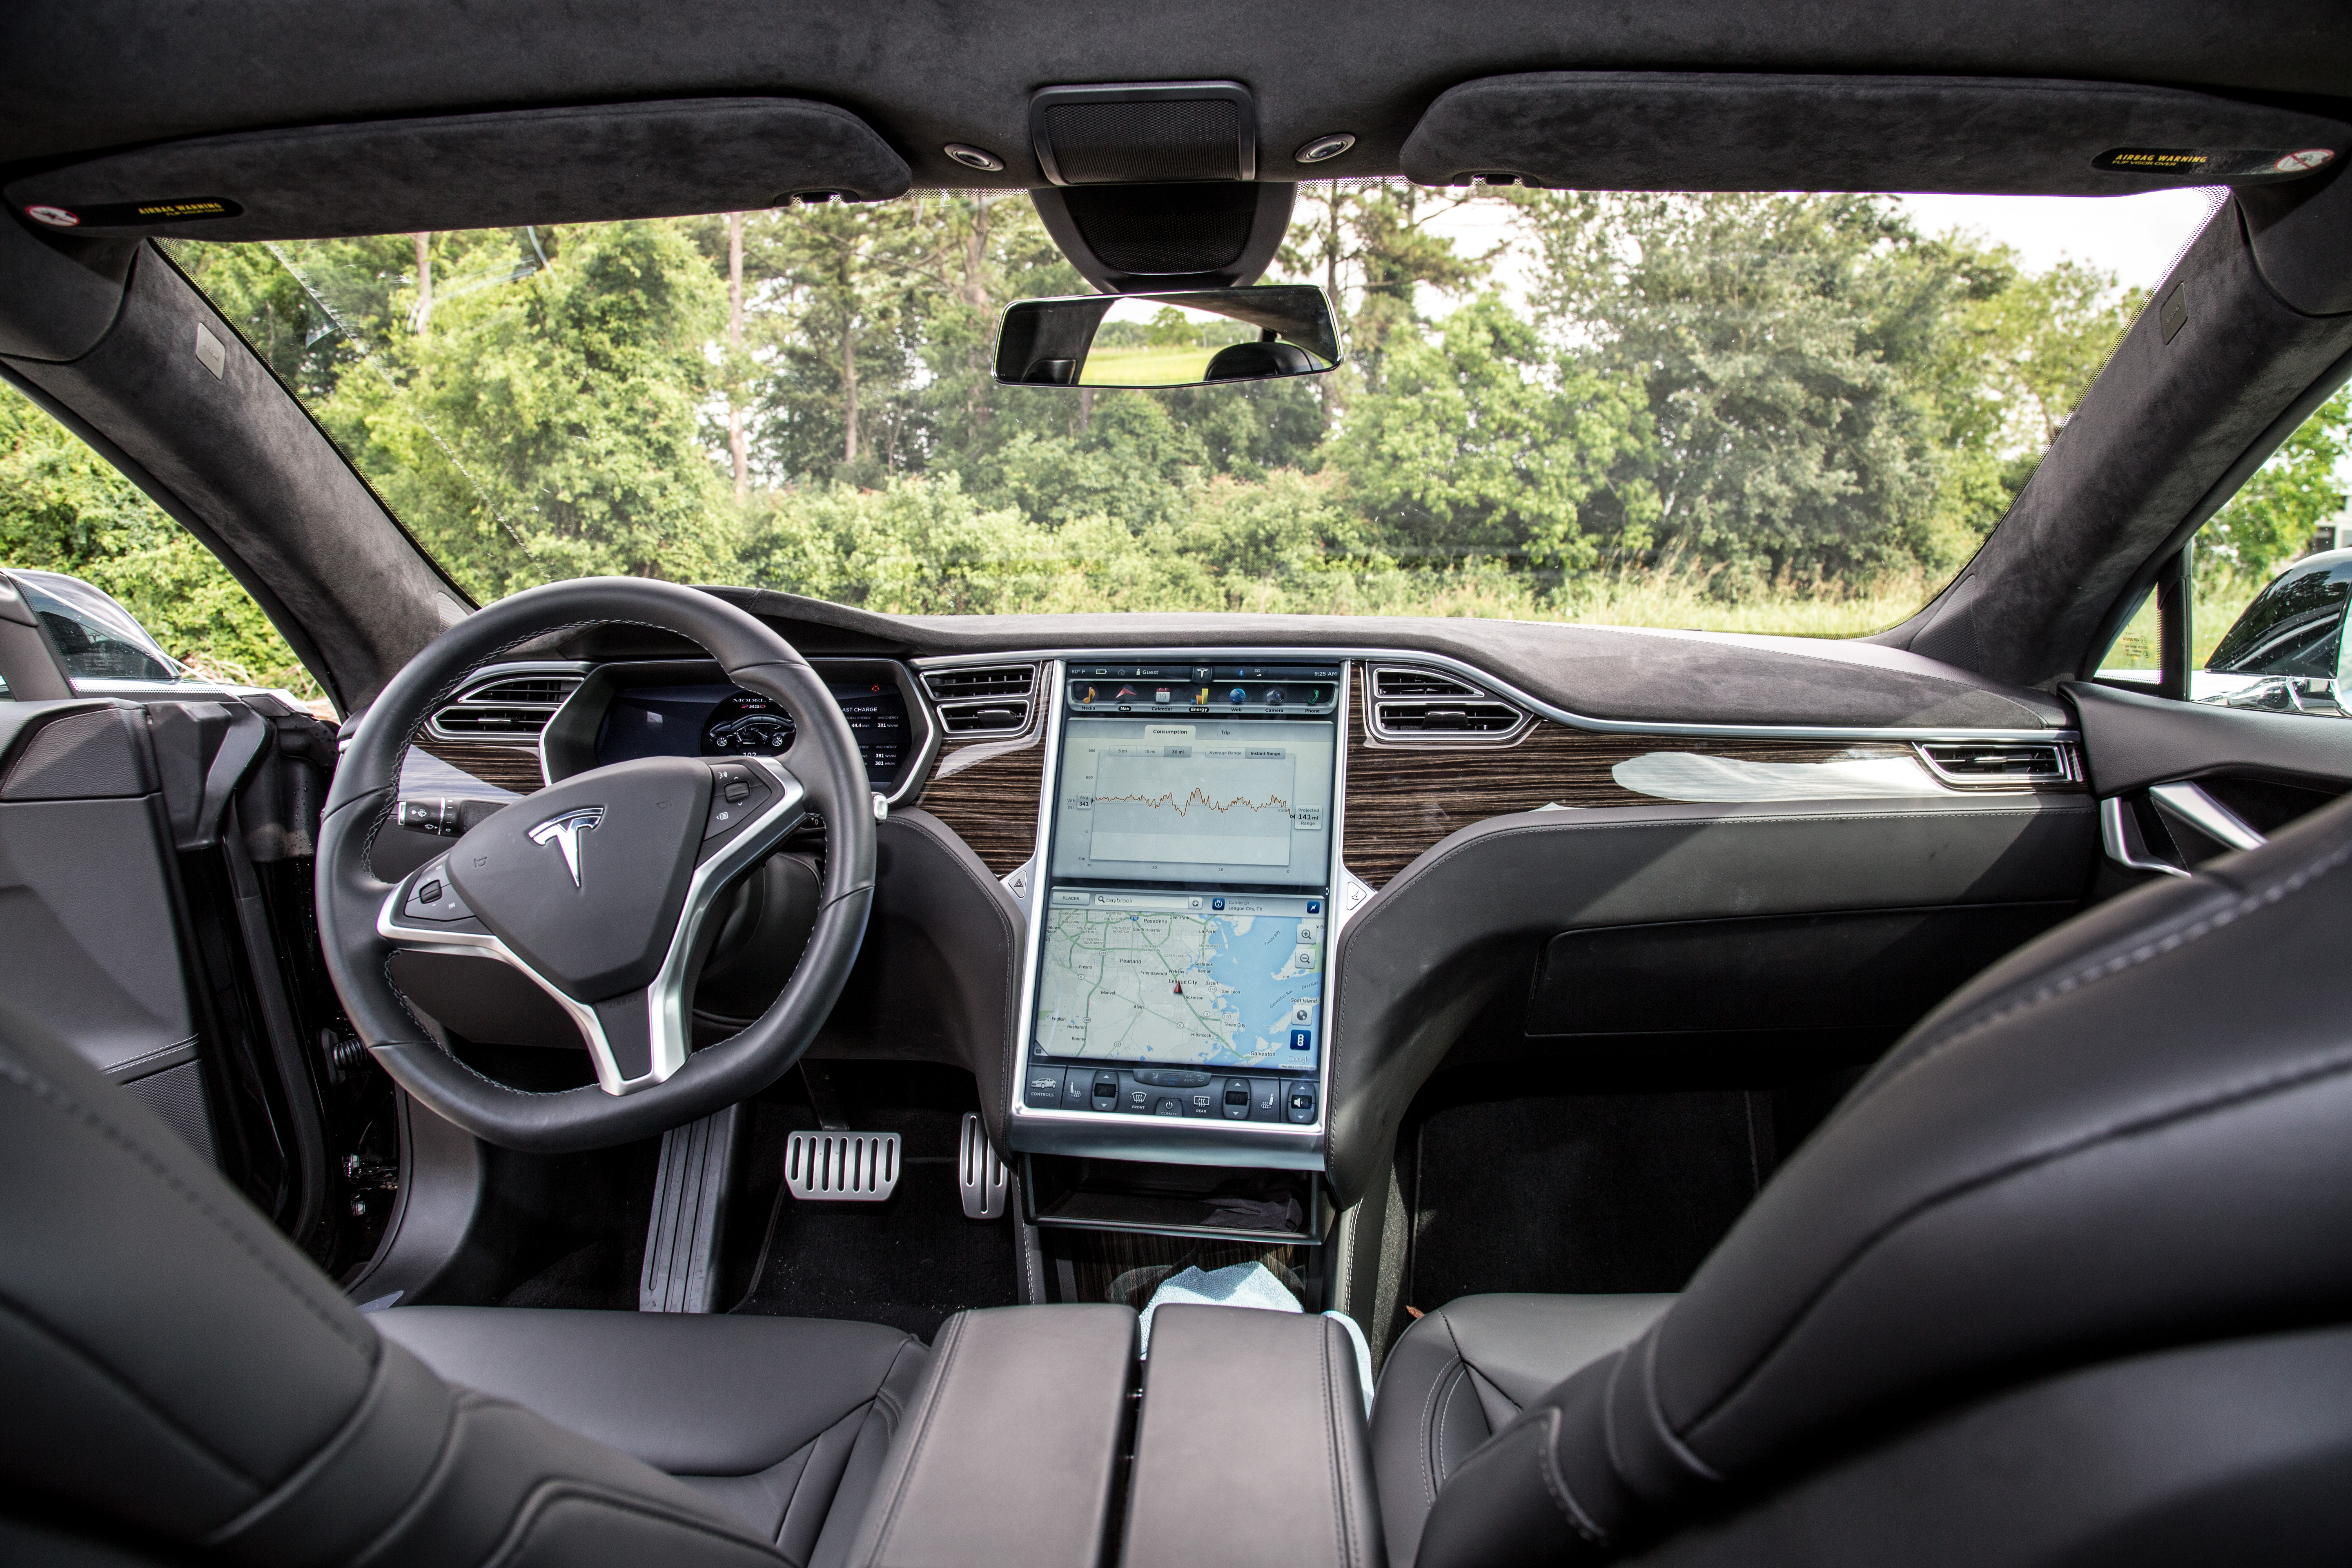 The steering wheel you won't need to touch (except when the car tells you to touch the steering wheel to make sure you haven't died or something).